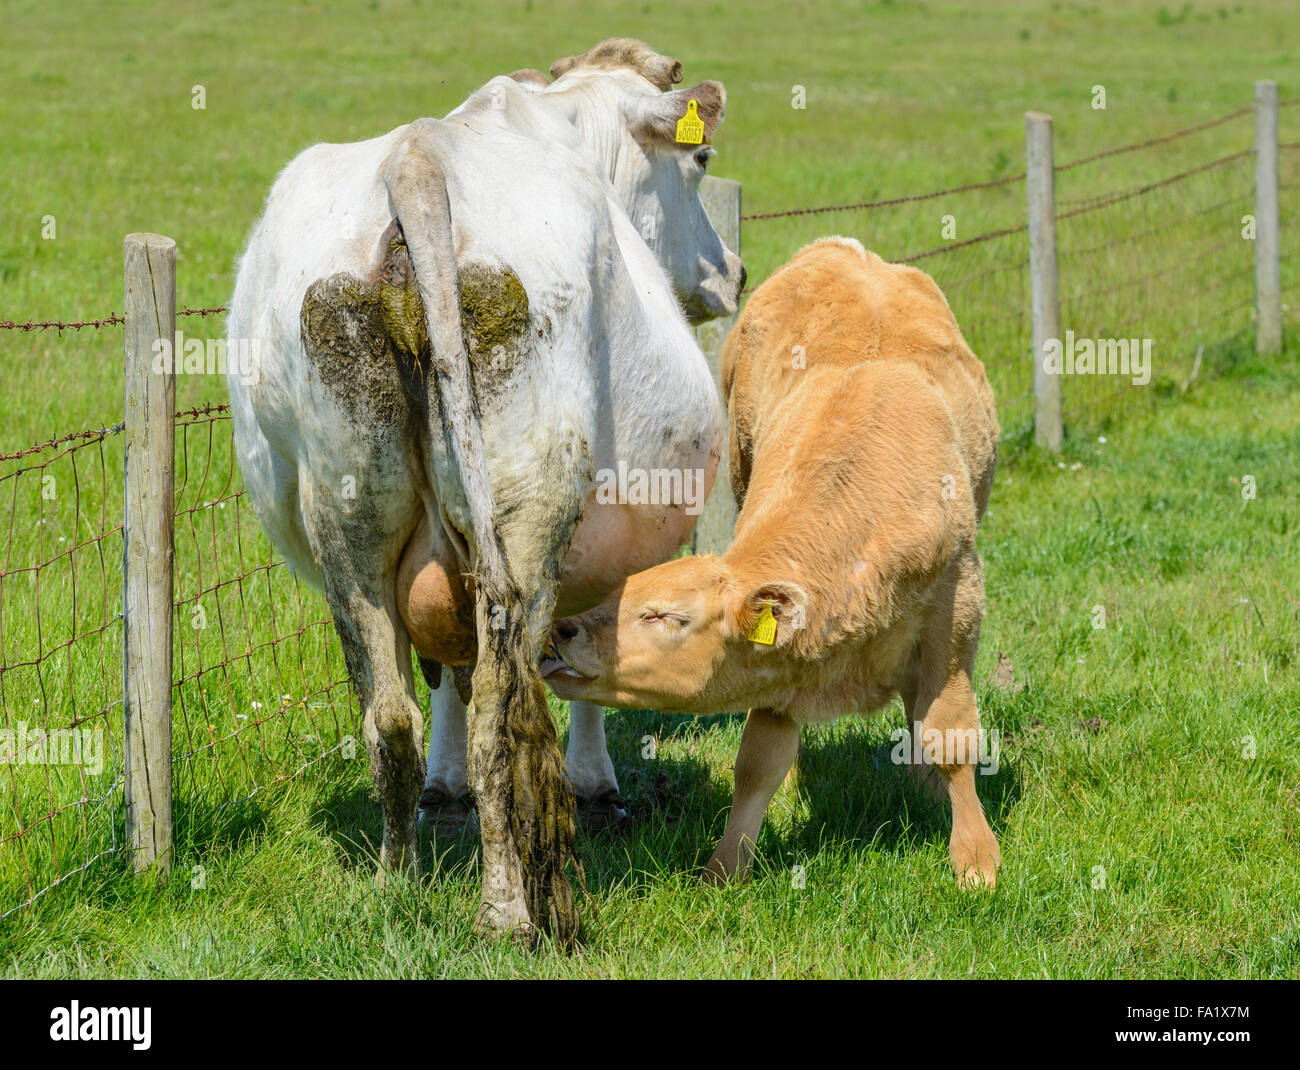 young-calf-sucking-from-its-mother-in-a-